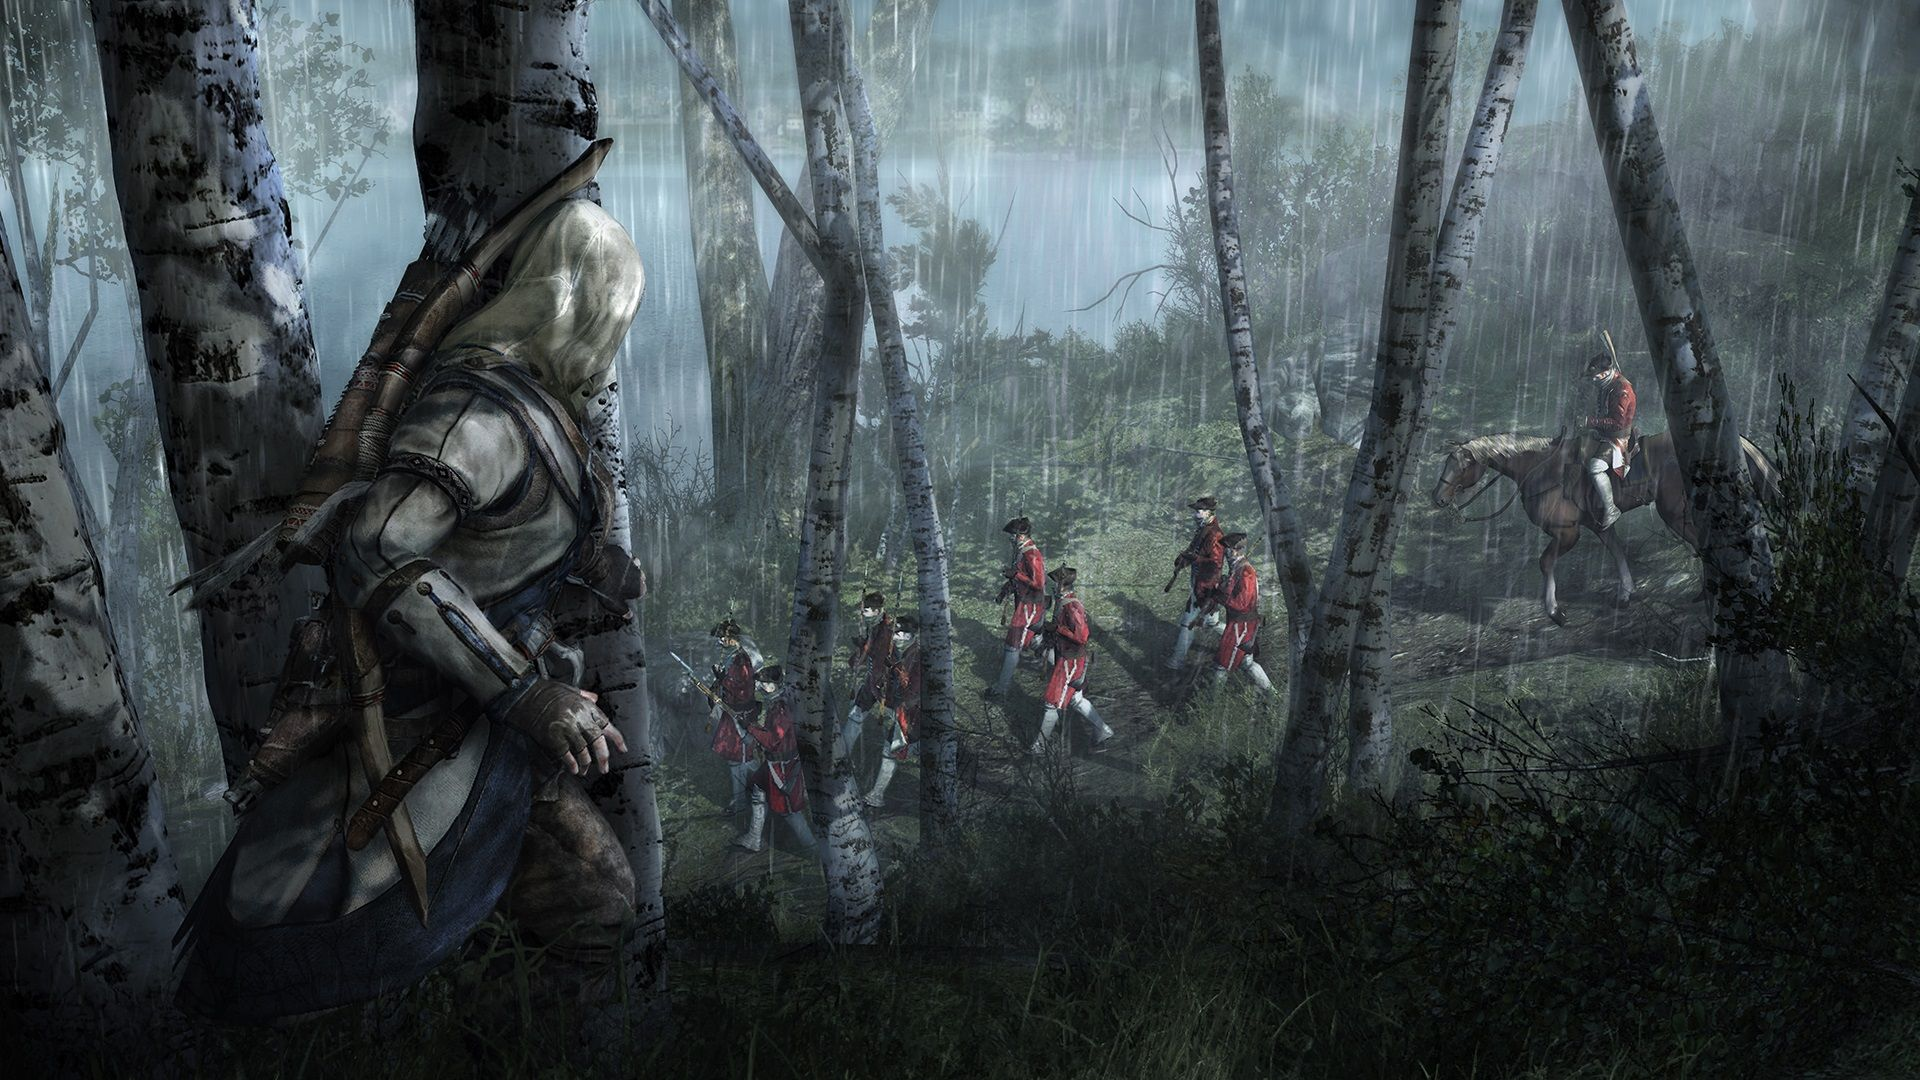 Connor kenway with an ax assassins creed iii wallpaper game art connor kenway with an ax assassins creed iii wallpaper game voltagebd Choice Image